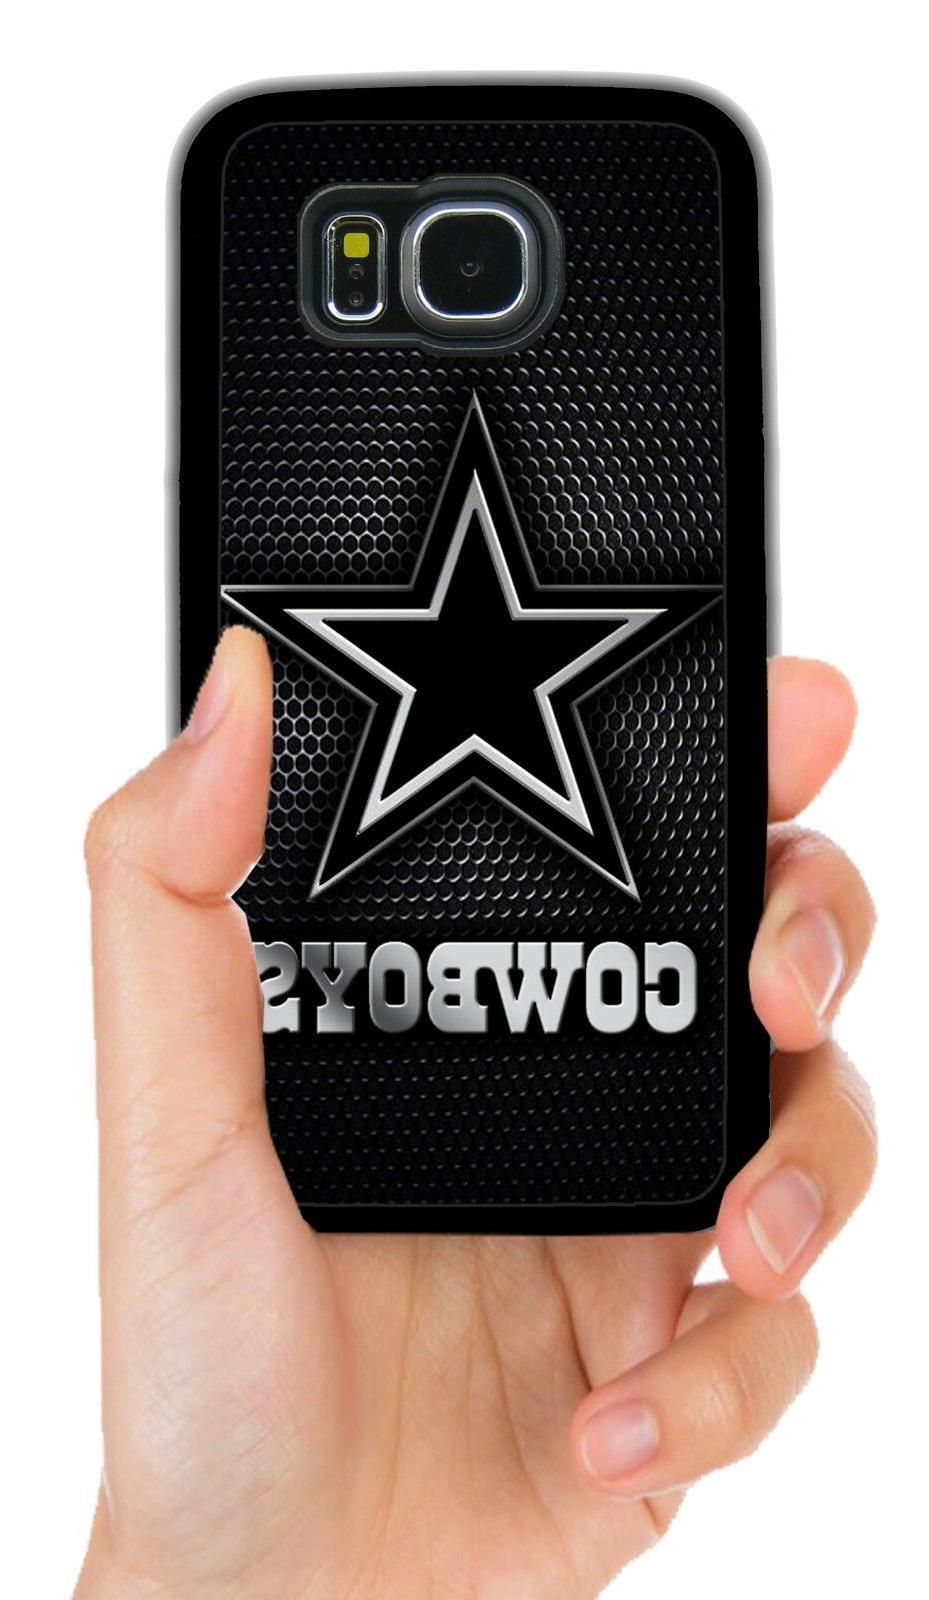 NEW DALLAS COWBOYS NFL PHONE CASE FOR SAMSUNG GALAXY NOTE S4